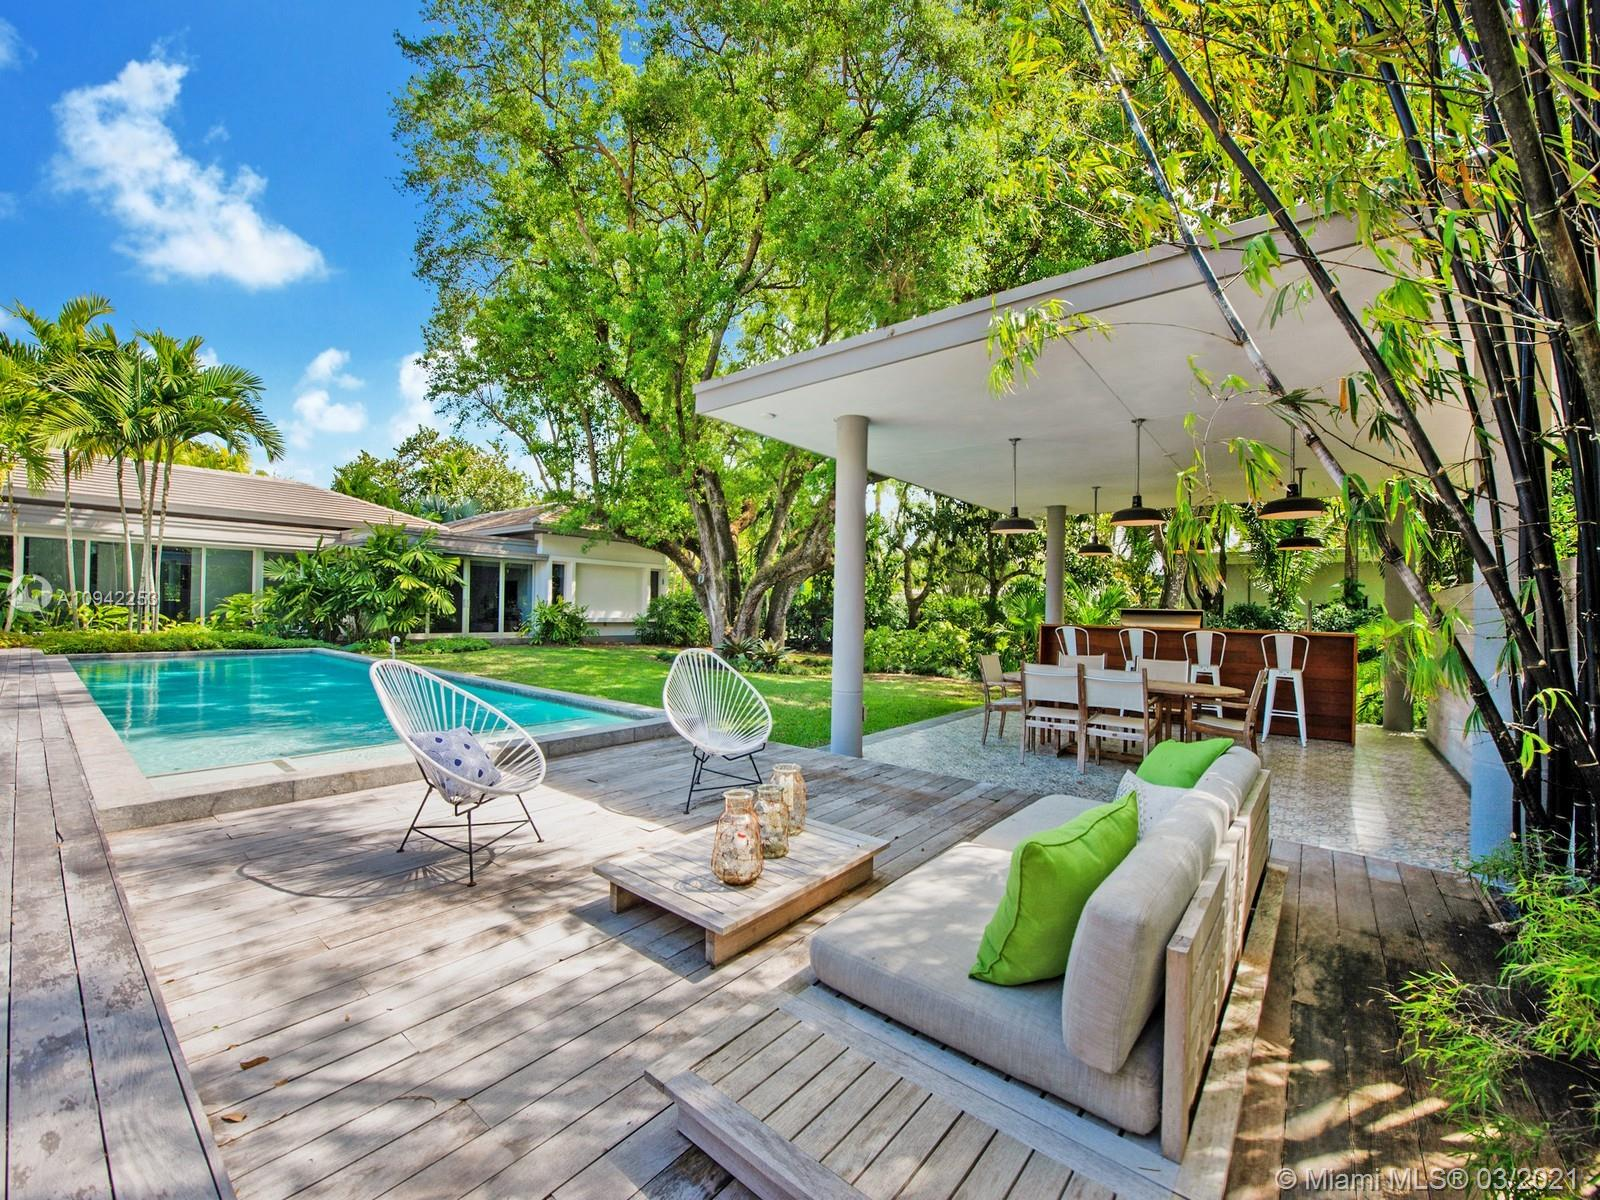 Custom Built Mid Century-Tropical Modern estate located in N Pinecrest. A tropical paradise nestled on a 34,717 sf lot enveloped by lush landscaping. Greeted by a boundless flr plan w/exquisite finishes & endless all-around views of the gorgeous backyd oasis w/huge windows & doors, providing bountiful natural light. The open flr plan offers a spacious living & dining rm w/high ceilings & integrated spaces. Custom Chef's kit w/Thermador Appl, gas range, breakfast area & huge family rm great for entertaining family/friends. Main Bedrm offers walk-in closet, patio area, spa-like bath w/shower, floating tub & double vanities. Media rm located outside main & secondary bedrms. Add features: poured Concrete Roof, service quarters, limestone & wd flrs, resort pool, summer kit, 2 car gar. Must See!